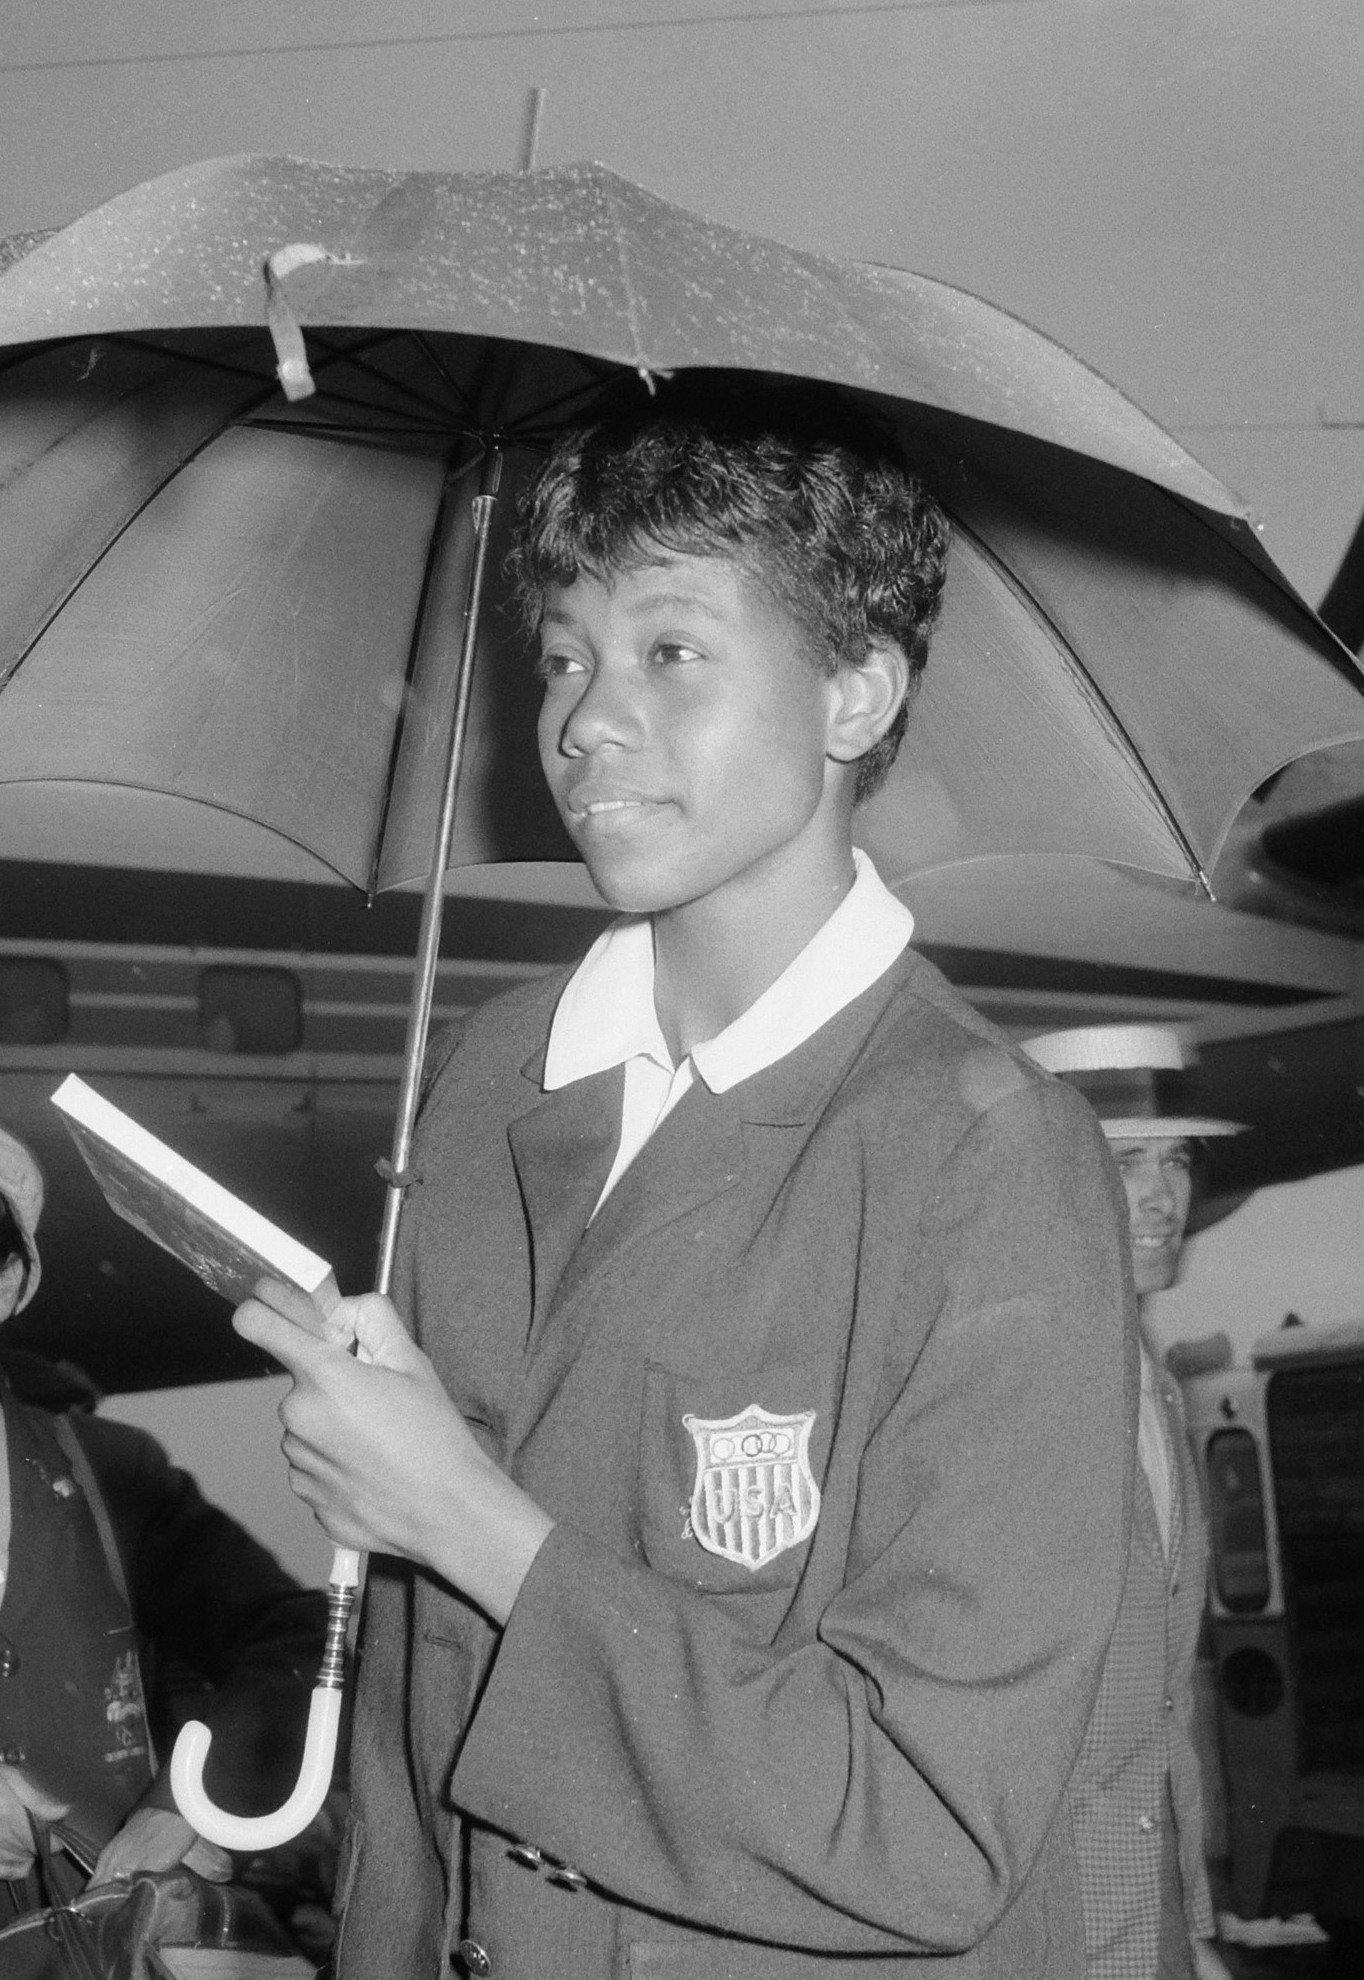 Wilma Rudolph poses under umbrella for the photographers in Netherlands in September 1960   Photo: Wikimedia Commons Images, 2.24.01.03 Bestanddeelnummer 911-6074, CC BY-SA 3.0 nl